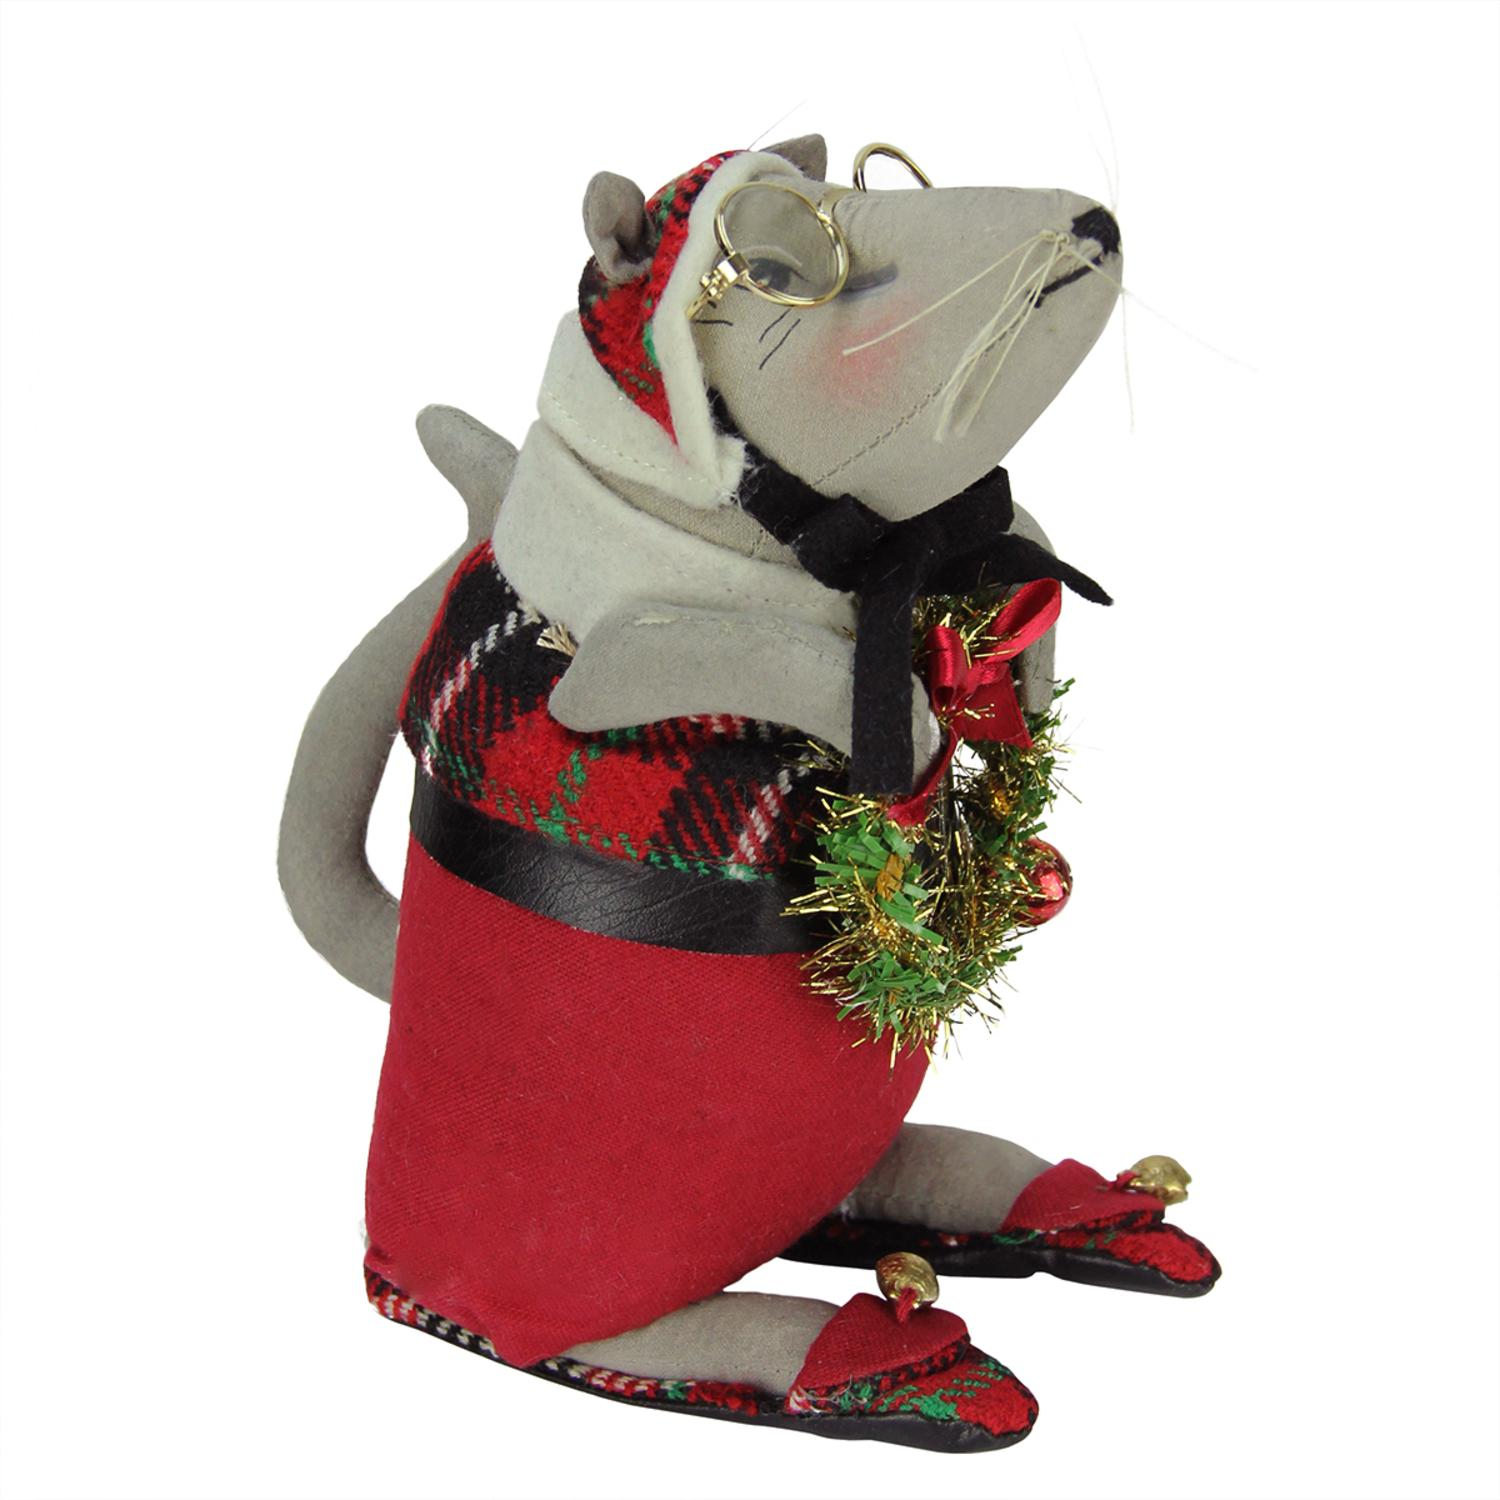 "8.25"" Gathered Traditions Grandpa Mouse Holding a Wreath Decorative Christmas Figurine"